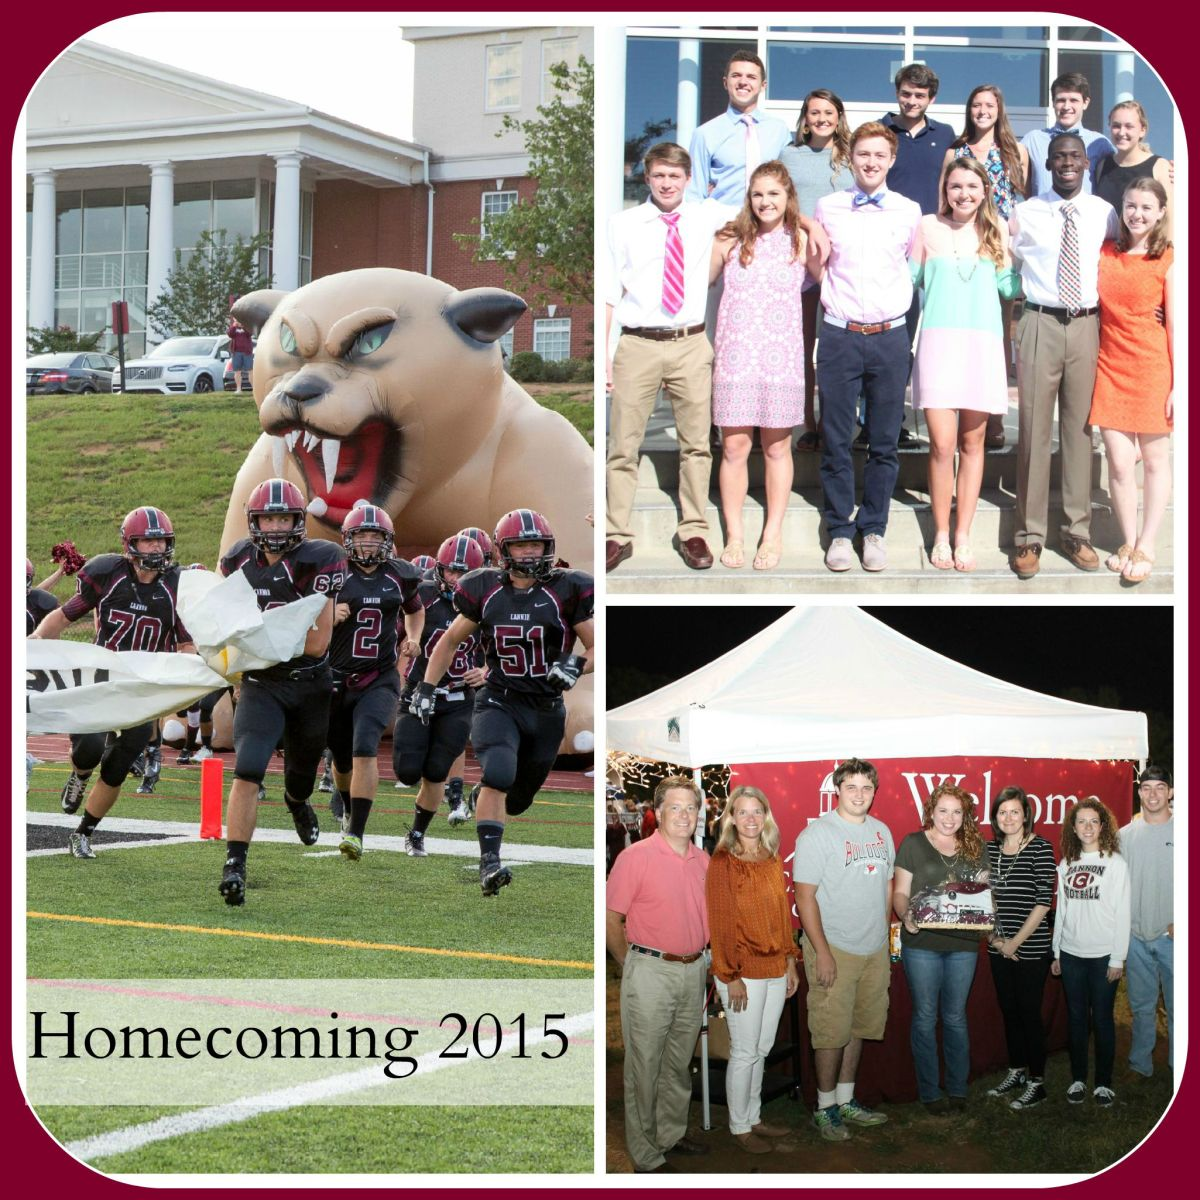 Homecomingcollage1